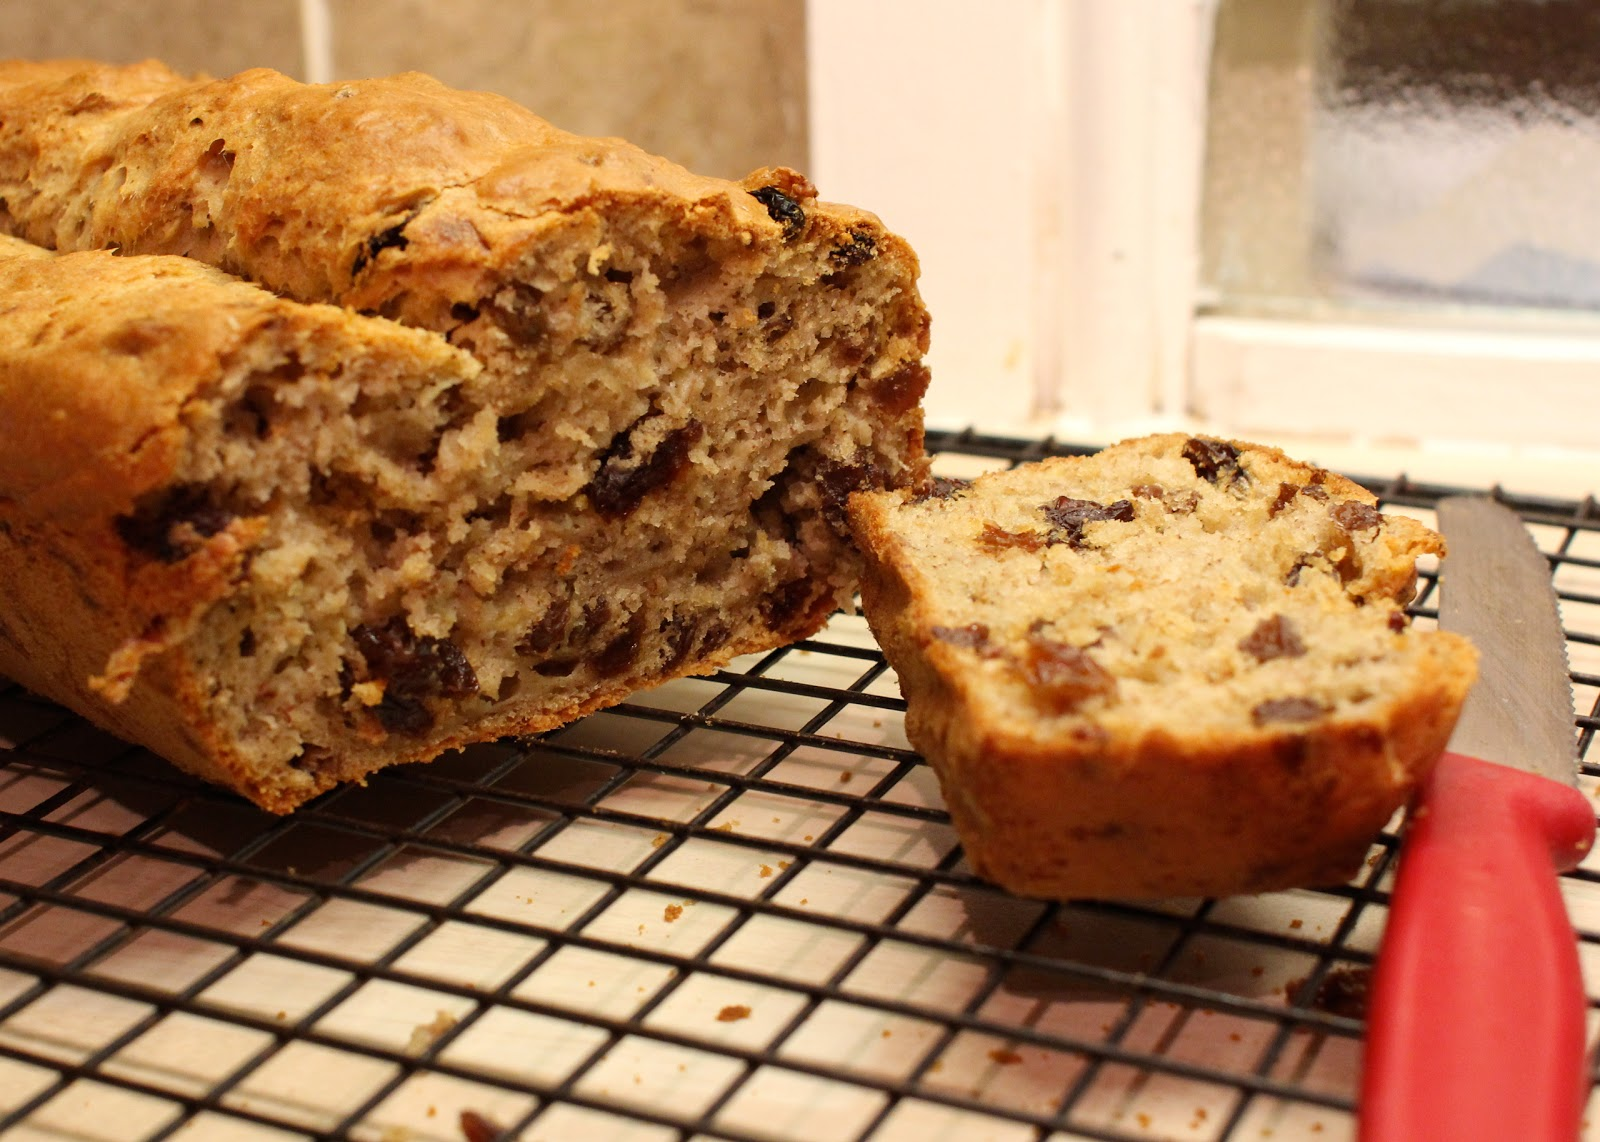 Mamacook sugar free banana bread for babies sugar free banana bread for babies forumfinder Choice Image